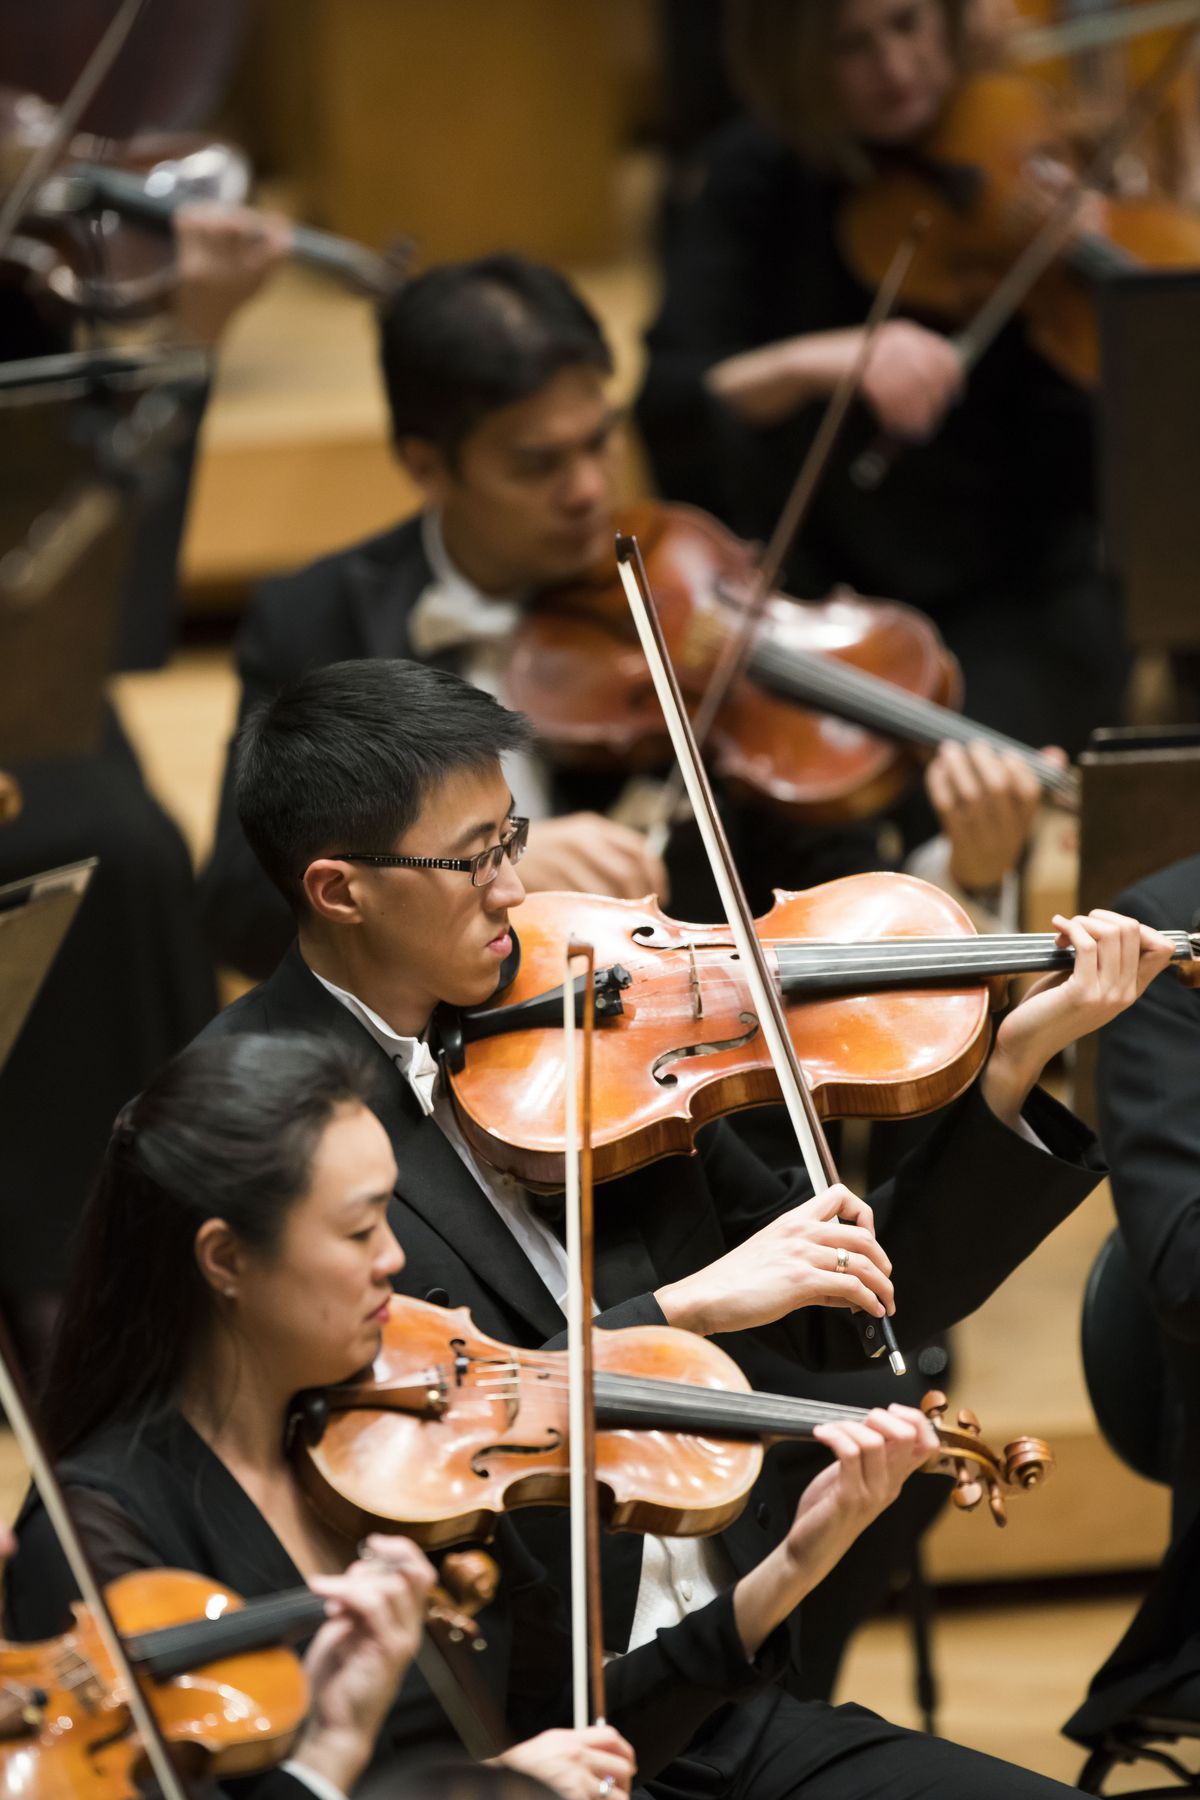 Image 533 was captured during a performance at Orchestra Hall. R. to L. CSO Viola Danny Lai, CSO Violin Sylvia Kilcullen.